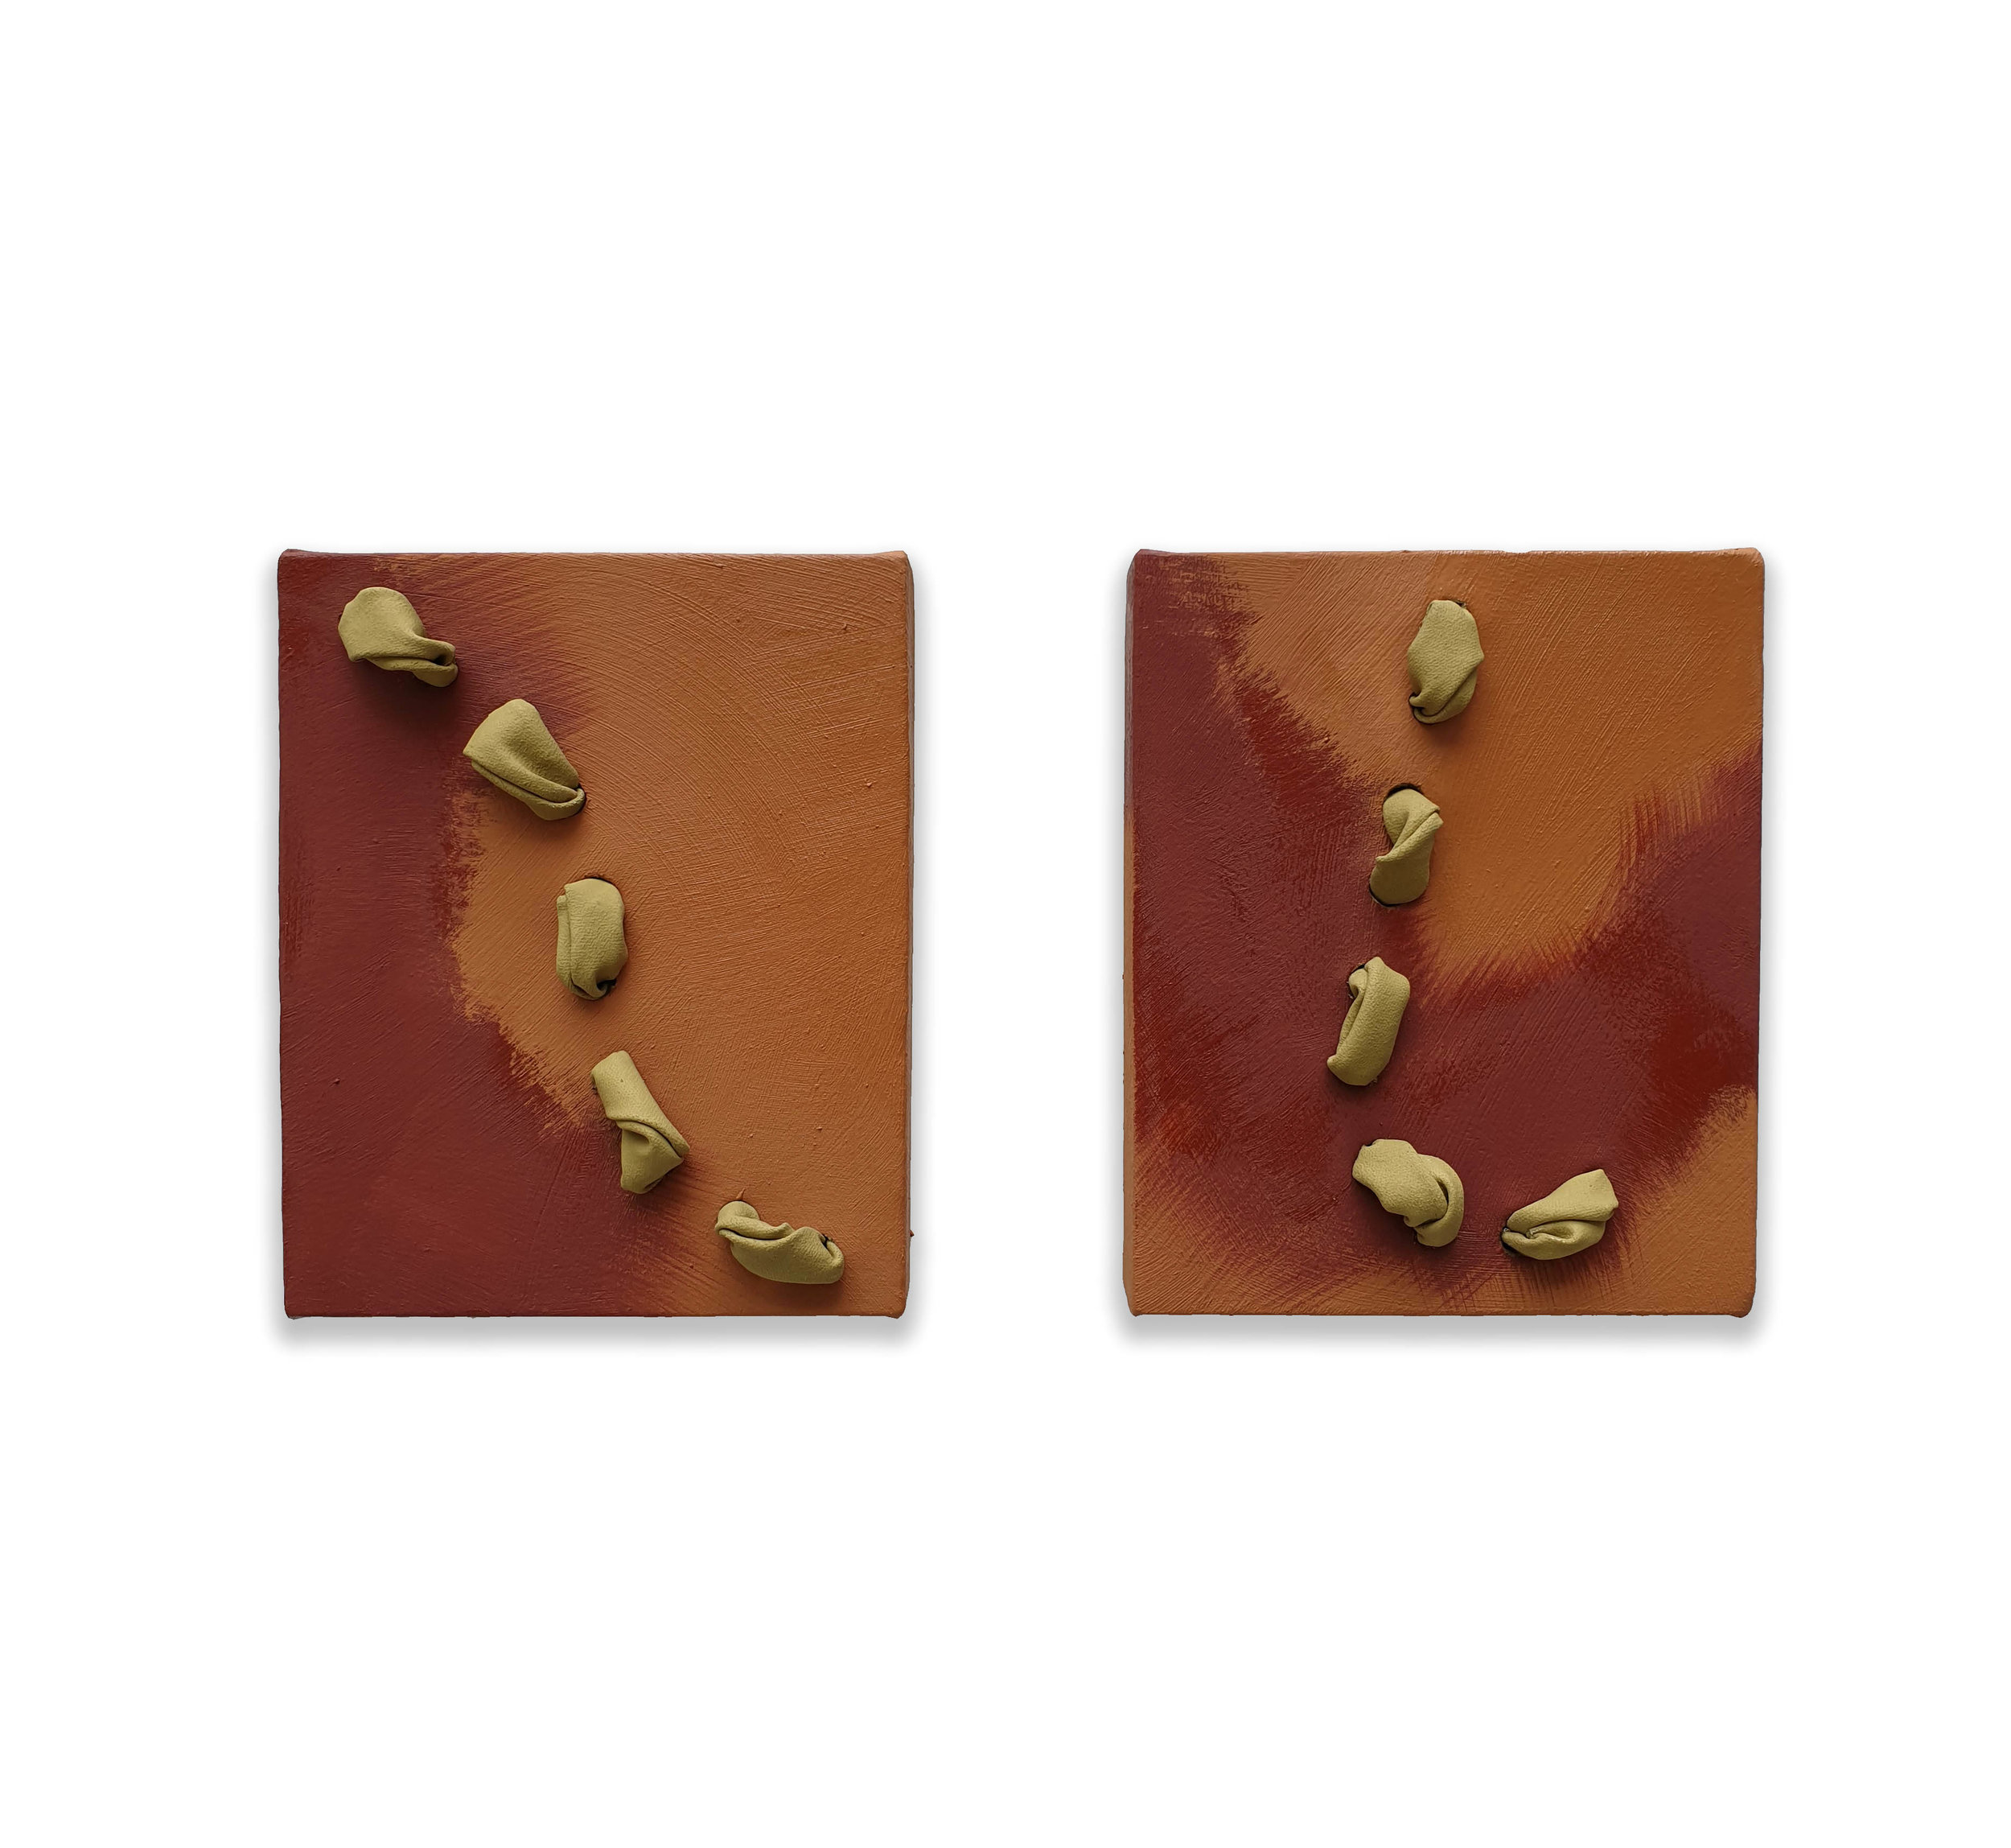 Dittico di Terra  - 2019  Acrylic and Oil pigment on canvas stretched on board  25 x 20 x 5,4 cm each